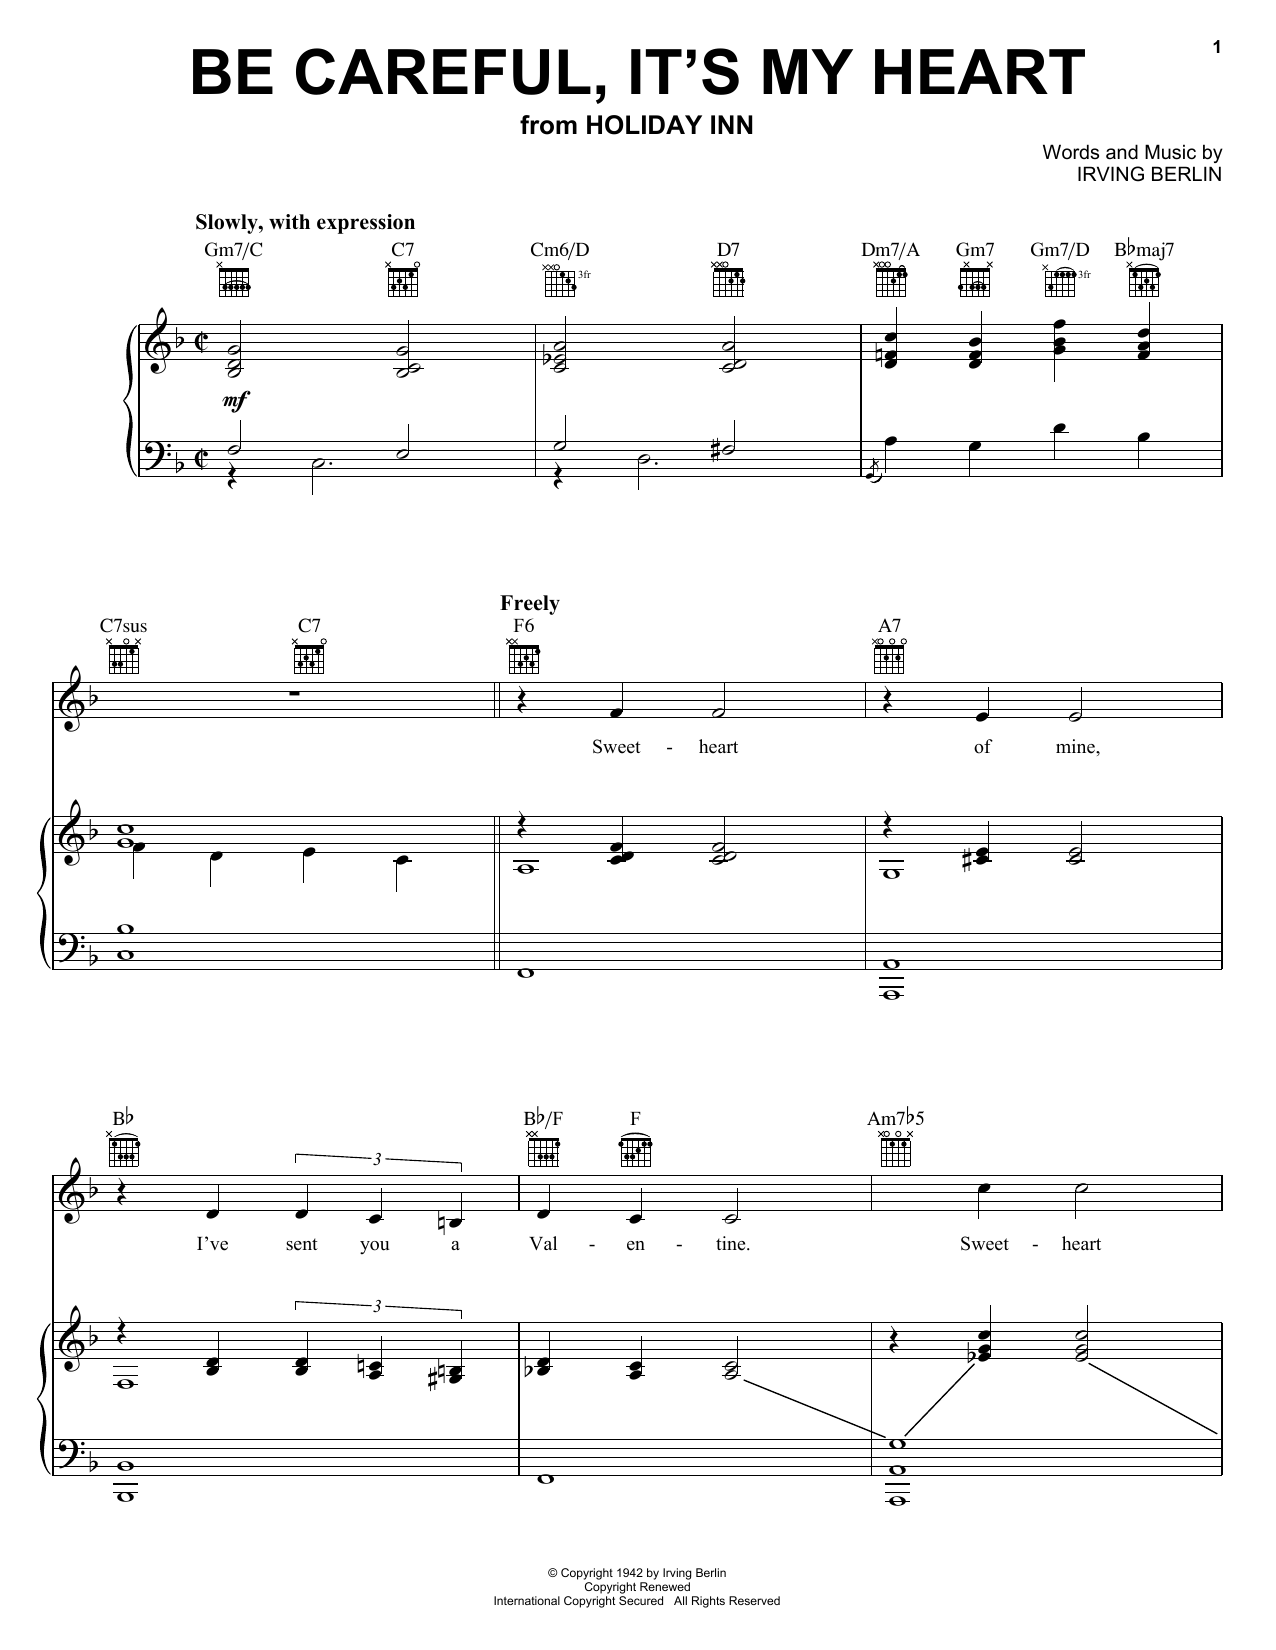 Irving Berlin Be Careful, It's My Heart sheet music notes and chords. Download Printable PDF.